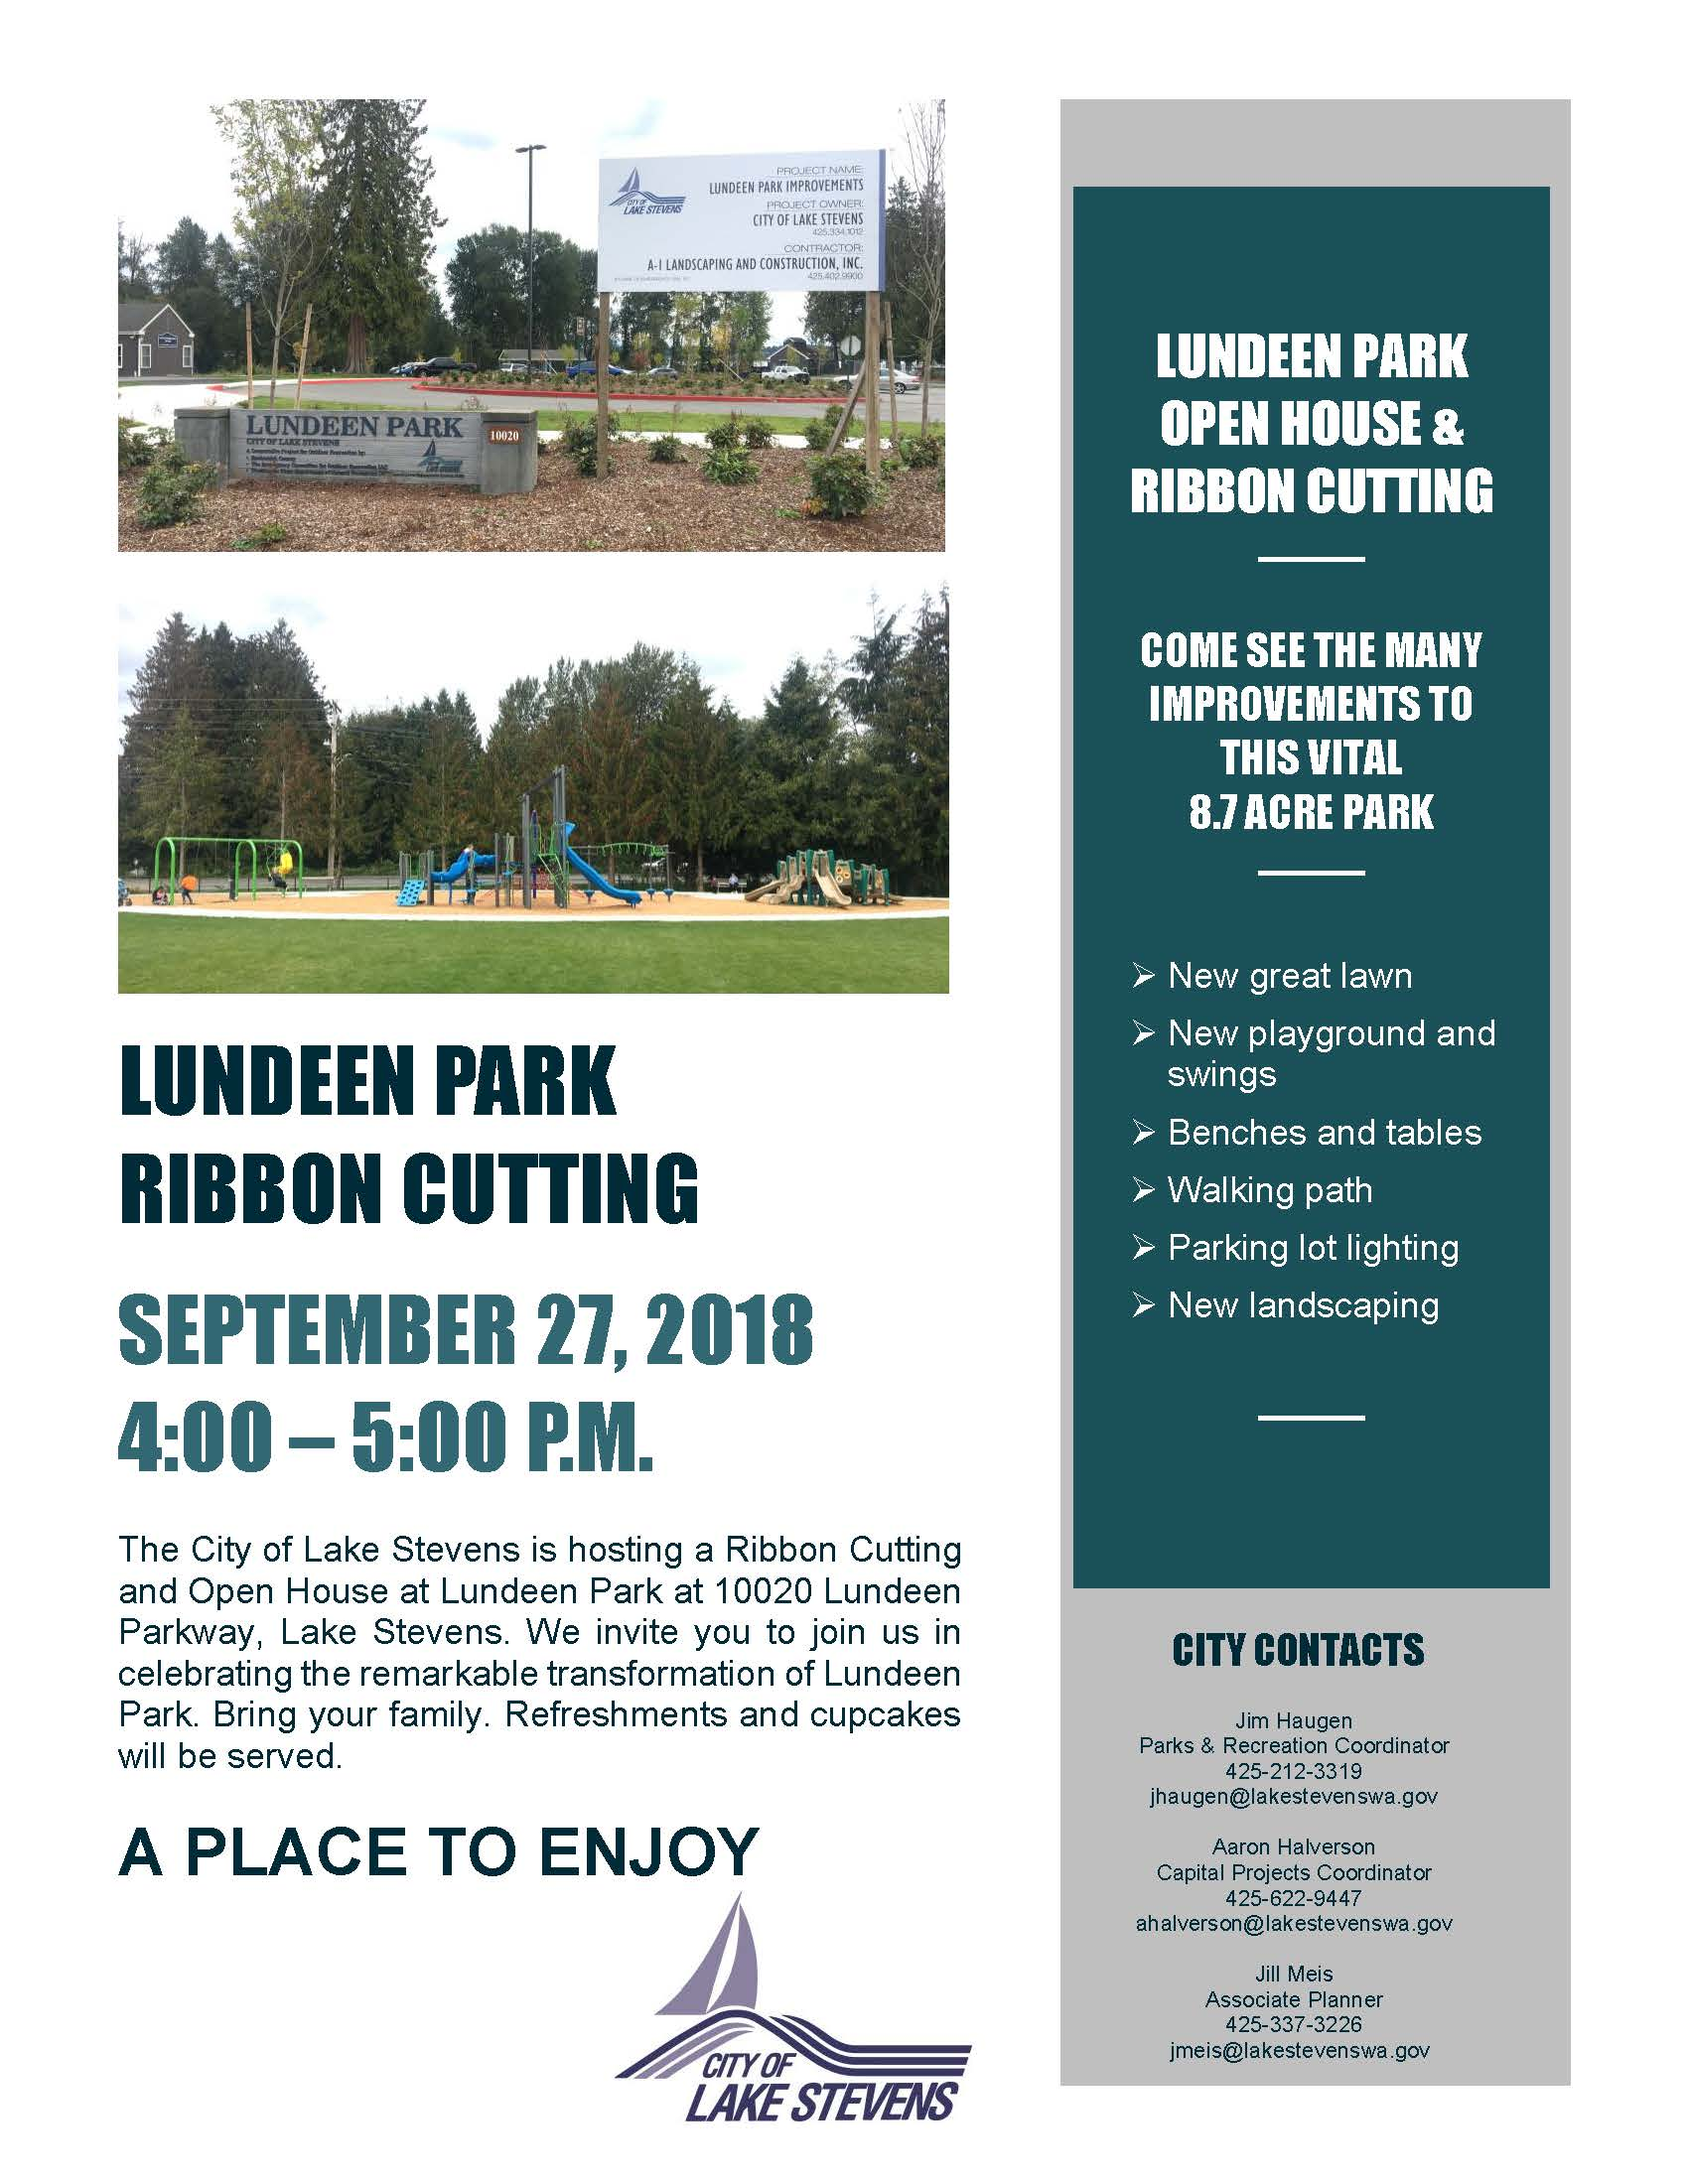 Lundeen Park Park Open House & Ribbon Cutting 9-27-18